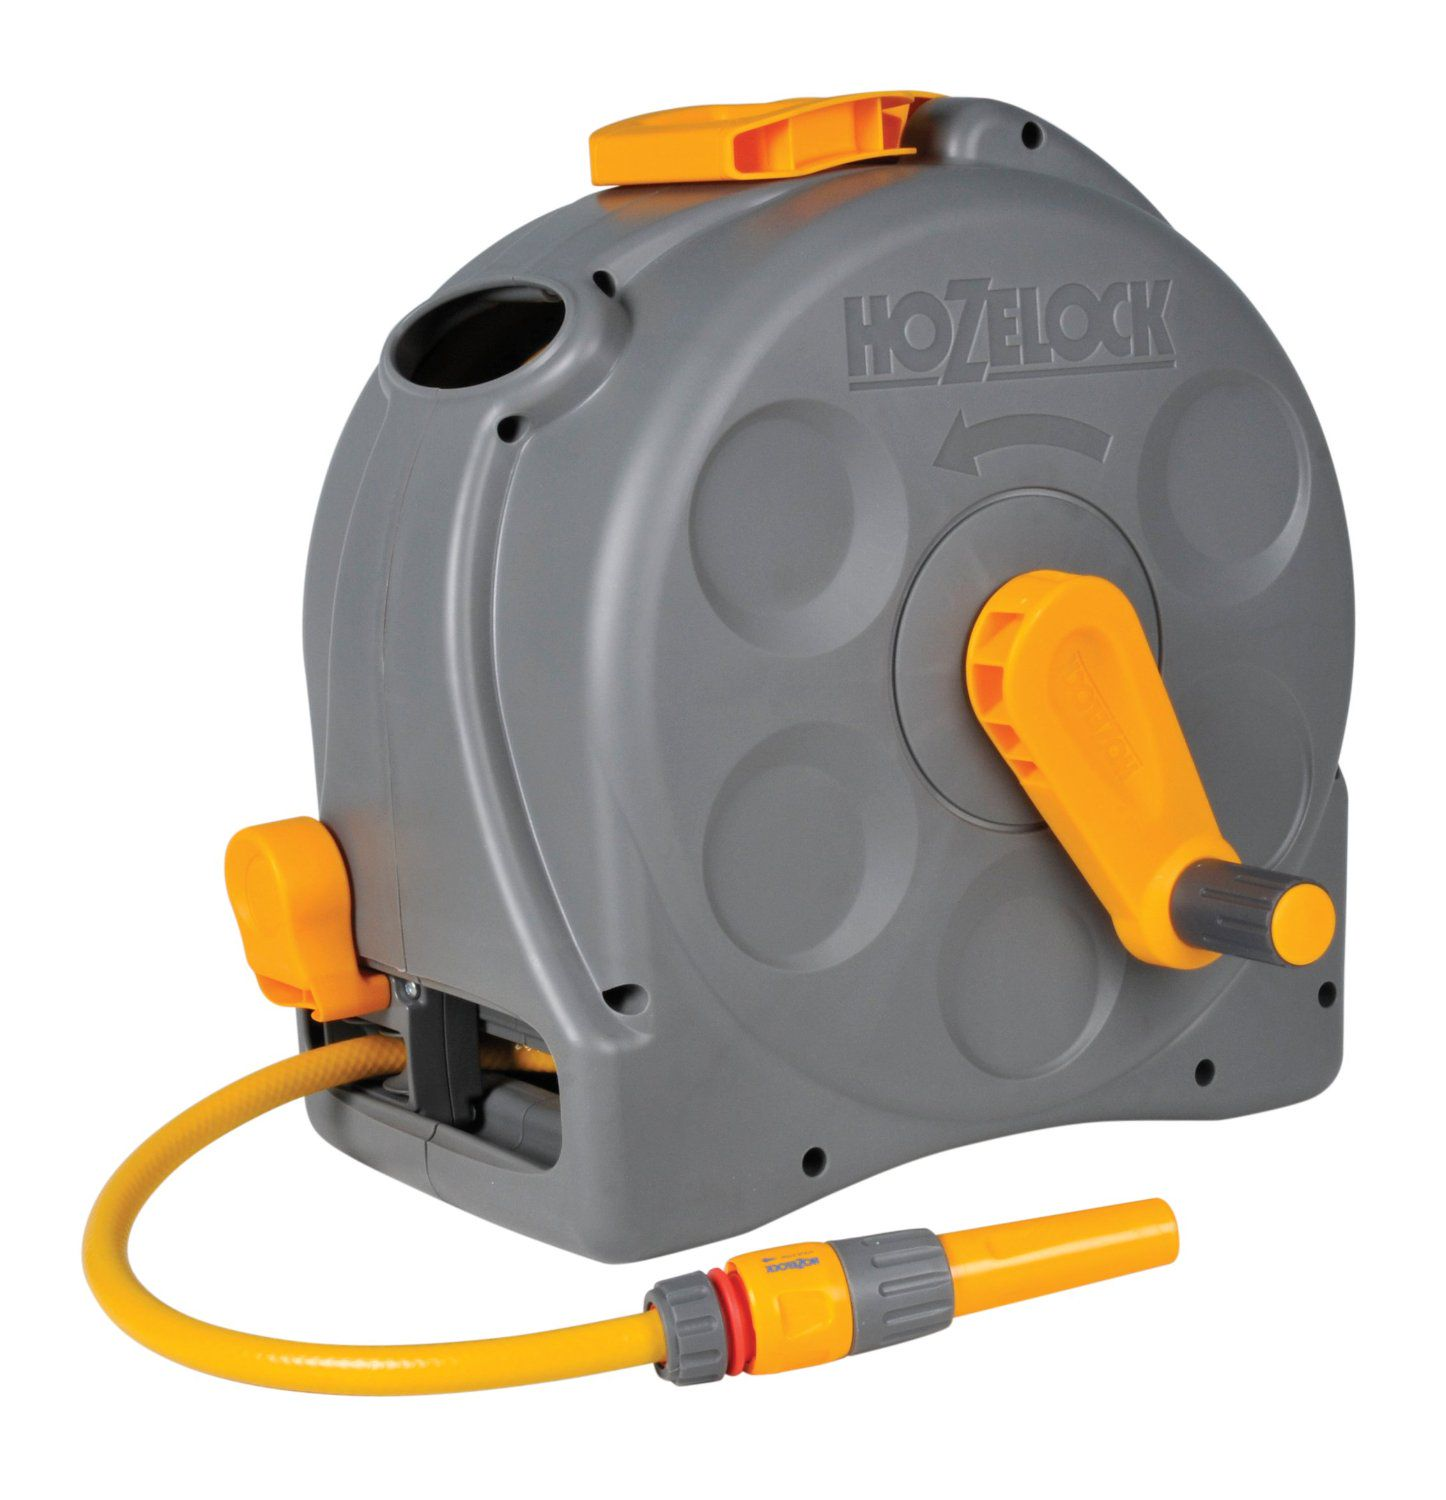 Hozelock Slangbox/-Muurhaspel 2-in-1 Incl. 25m Slang